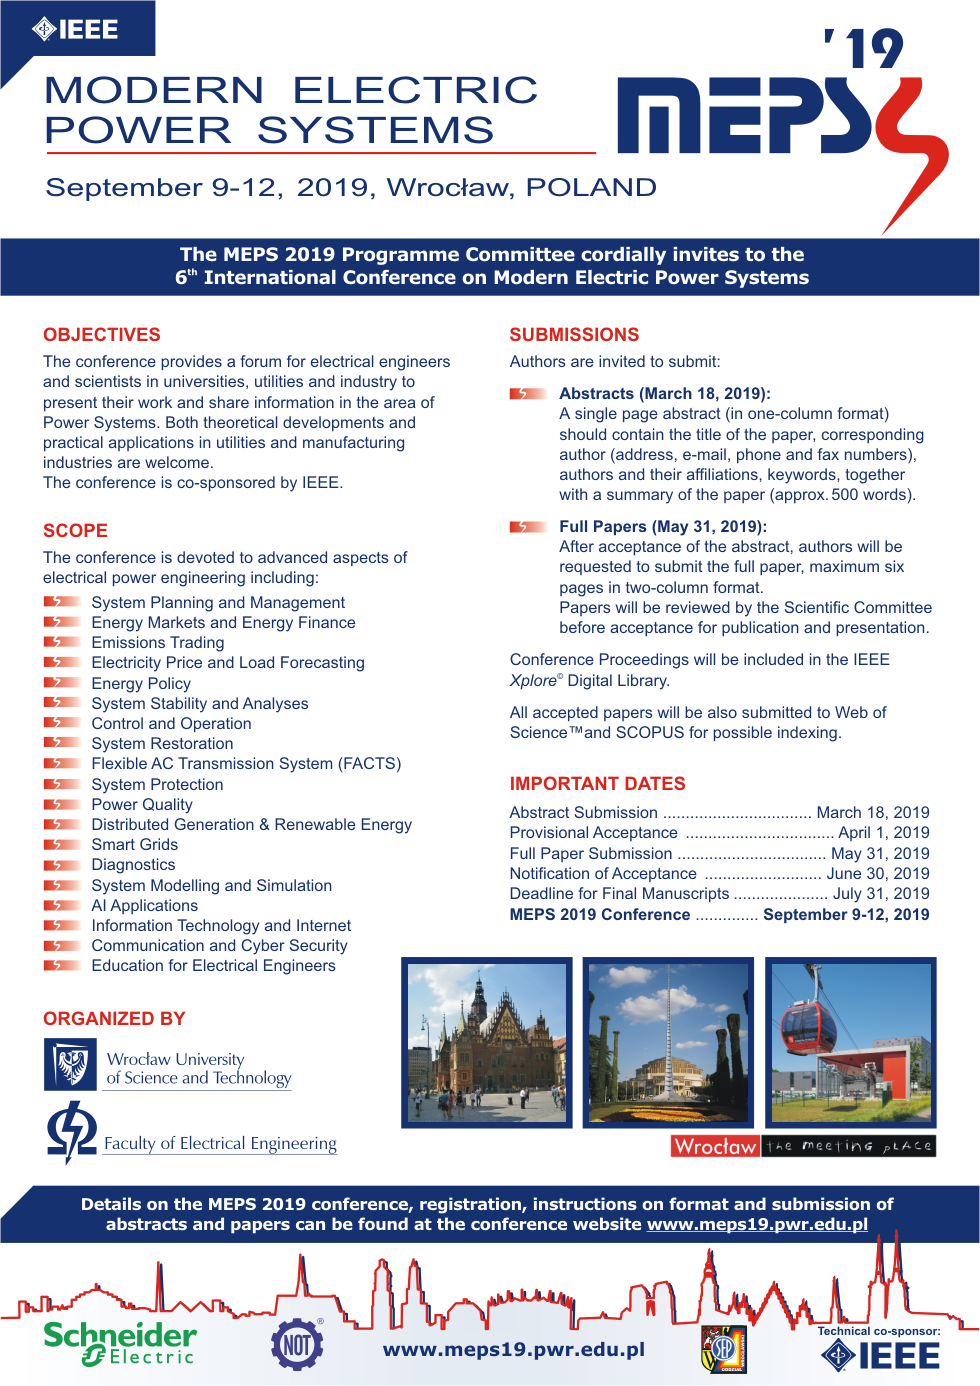 MEPS'19 Conference - Modern Electric Power Systems 2019